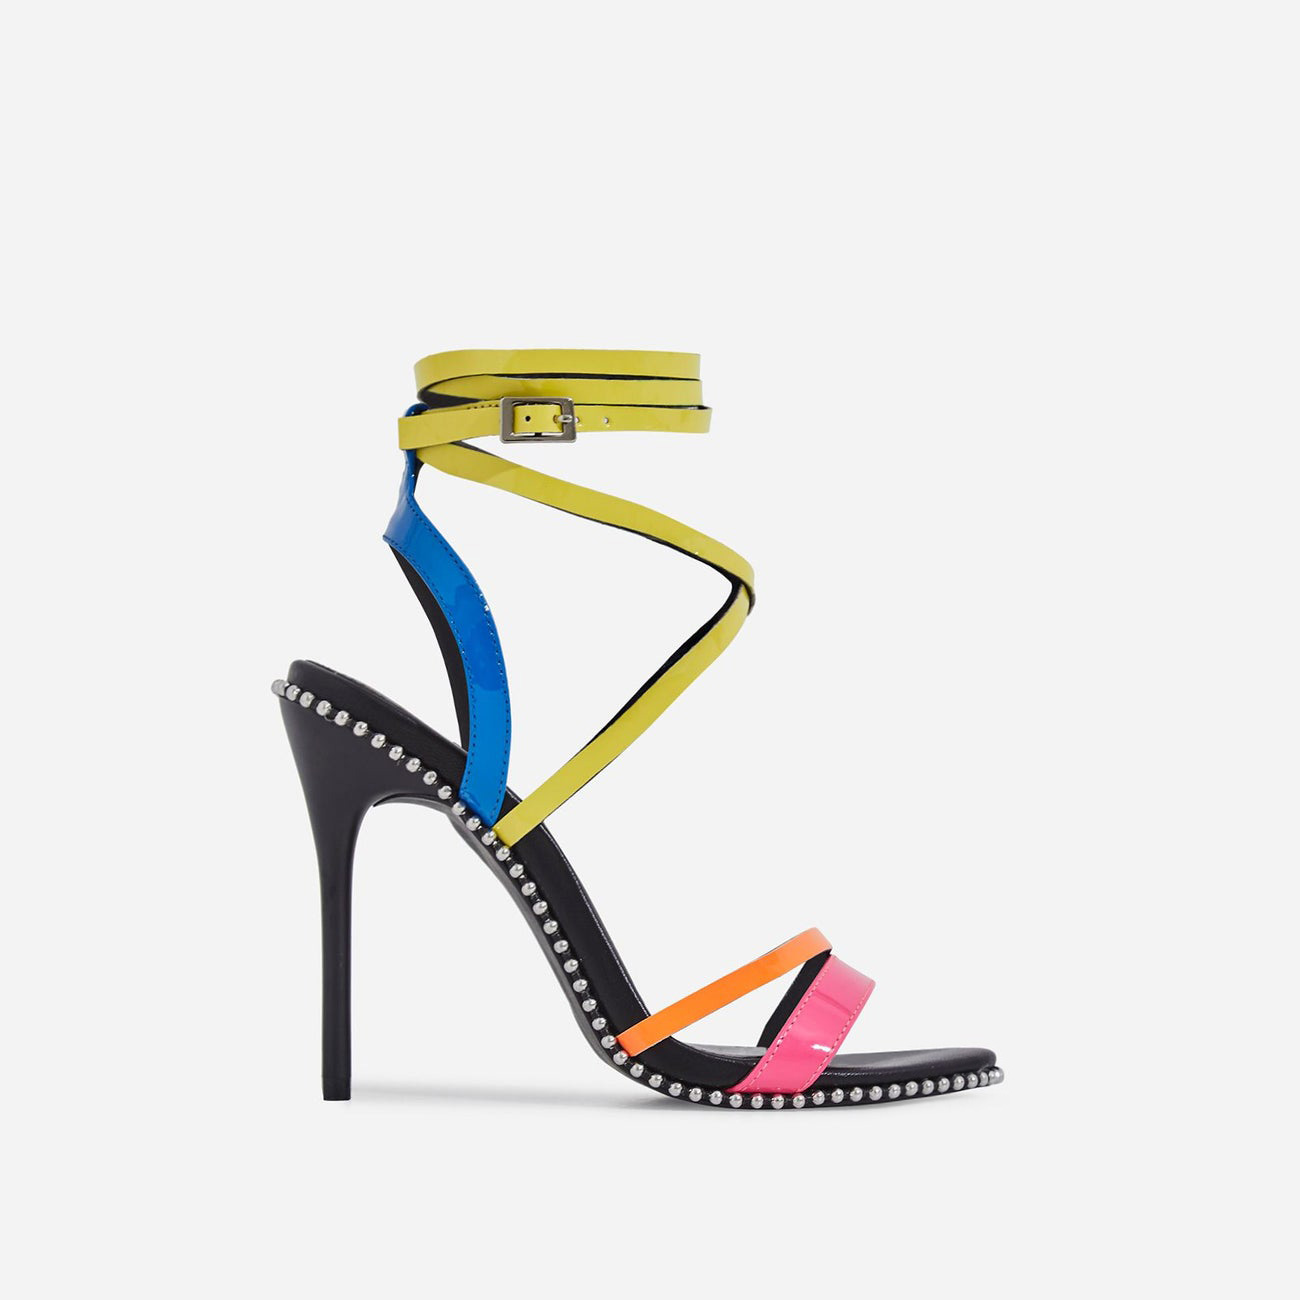 Marisa Studded Detail Lace Up Heel In Neon Multi Colour Patent